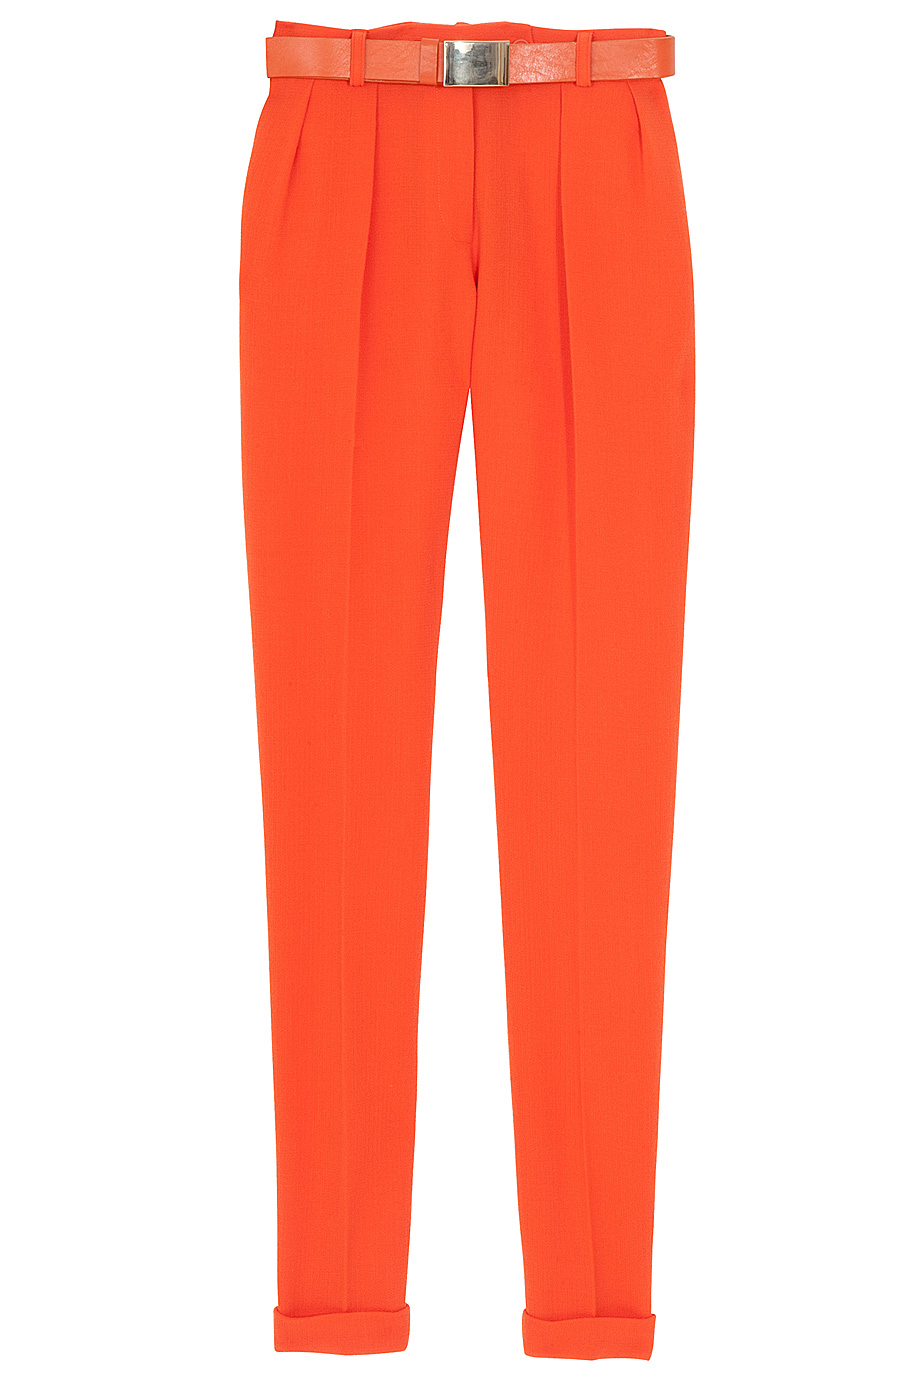 Preen by thornton bregazzi Clip Belt Pants in Orange.